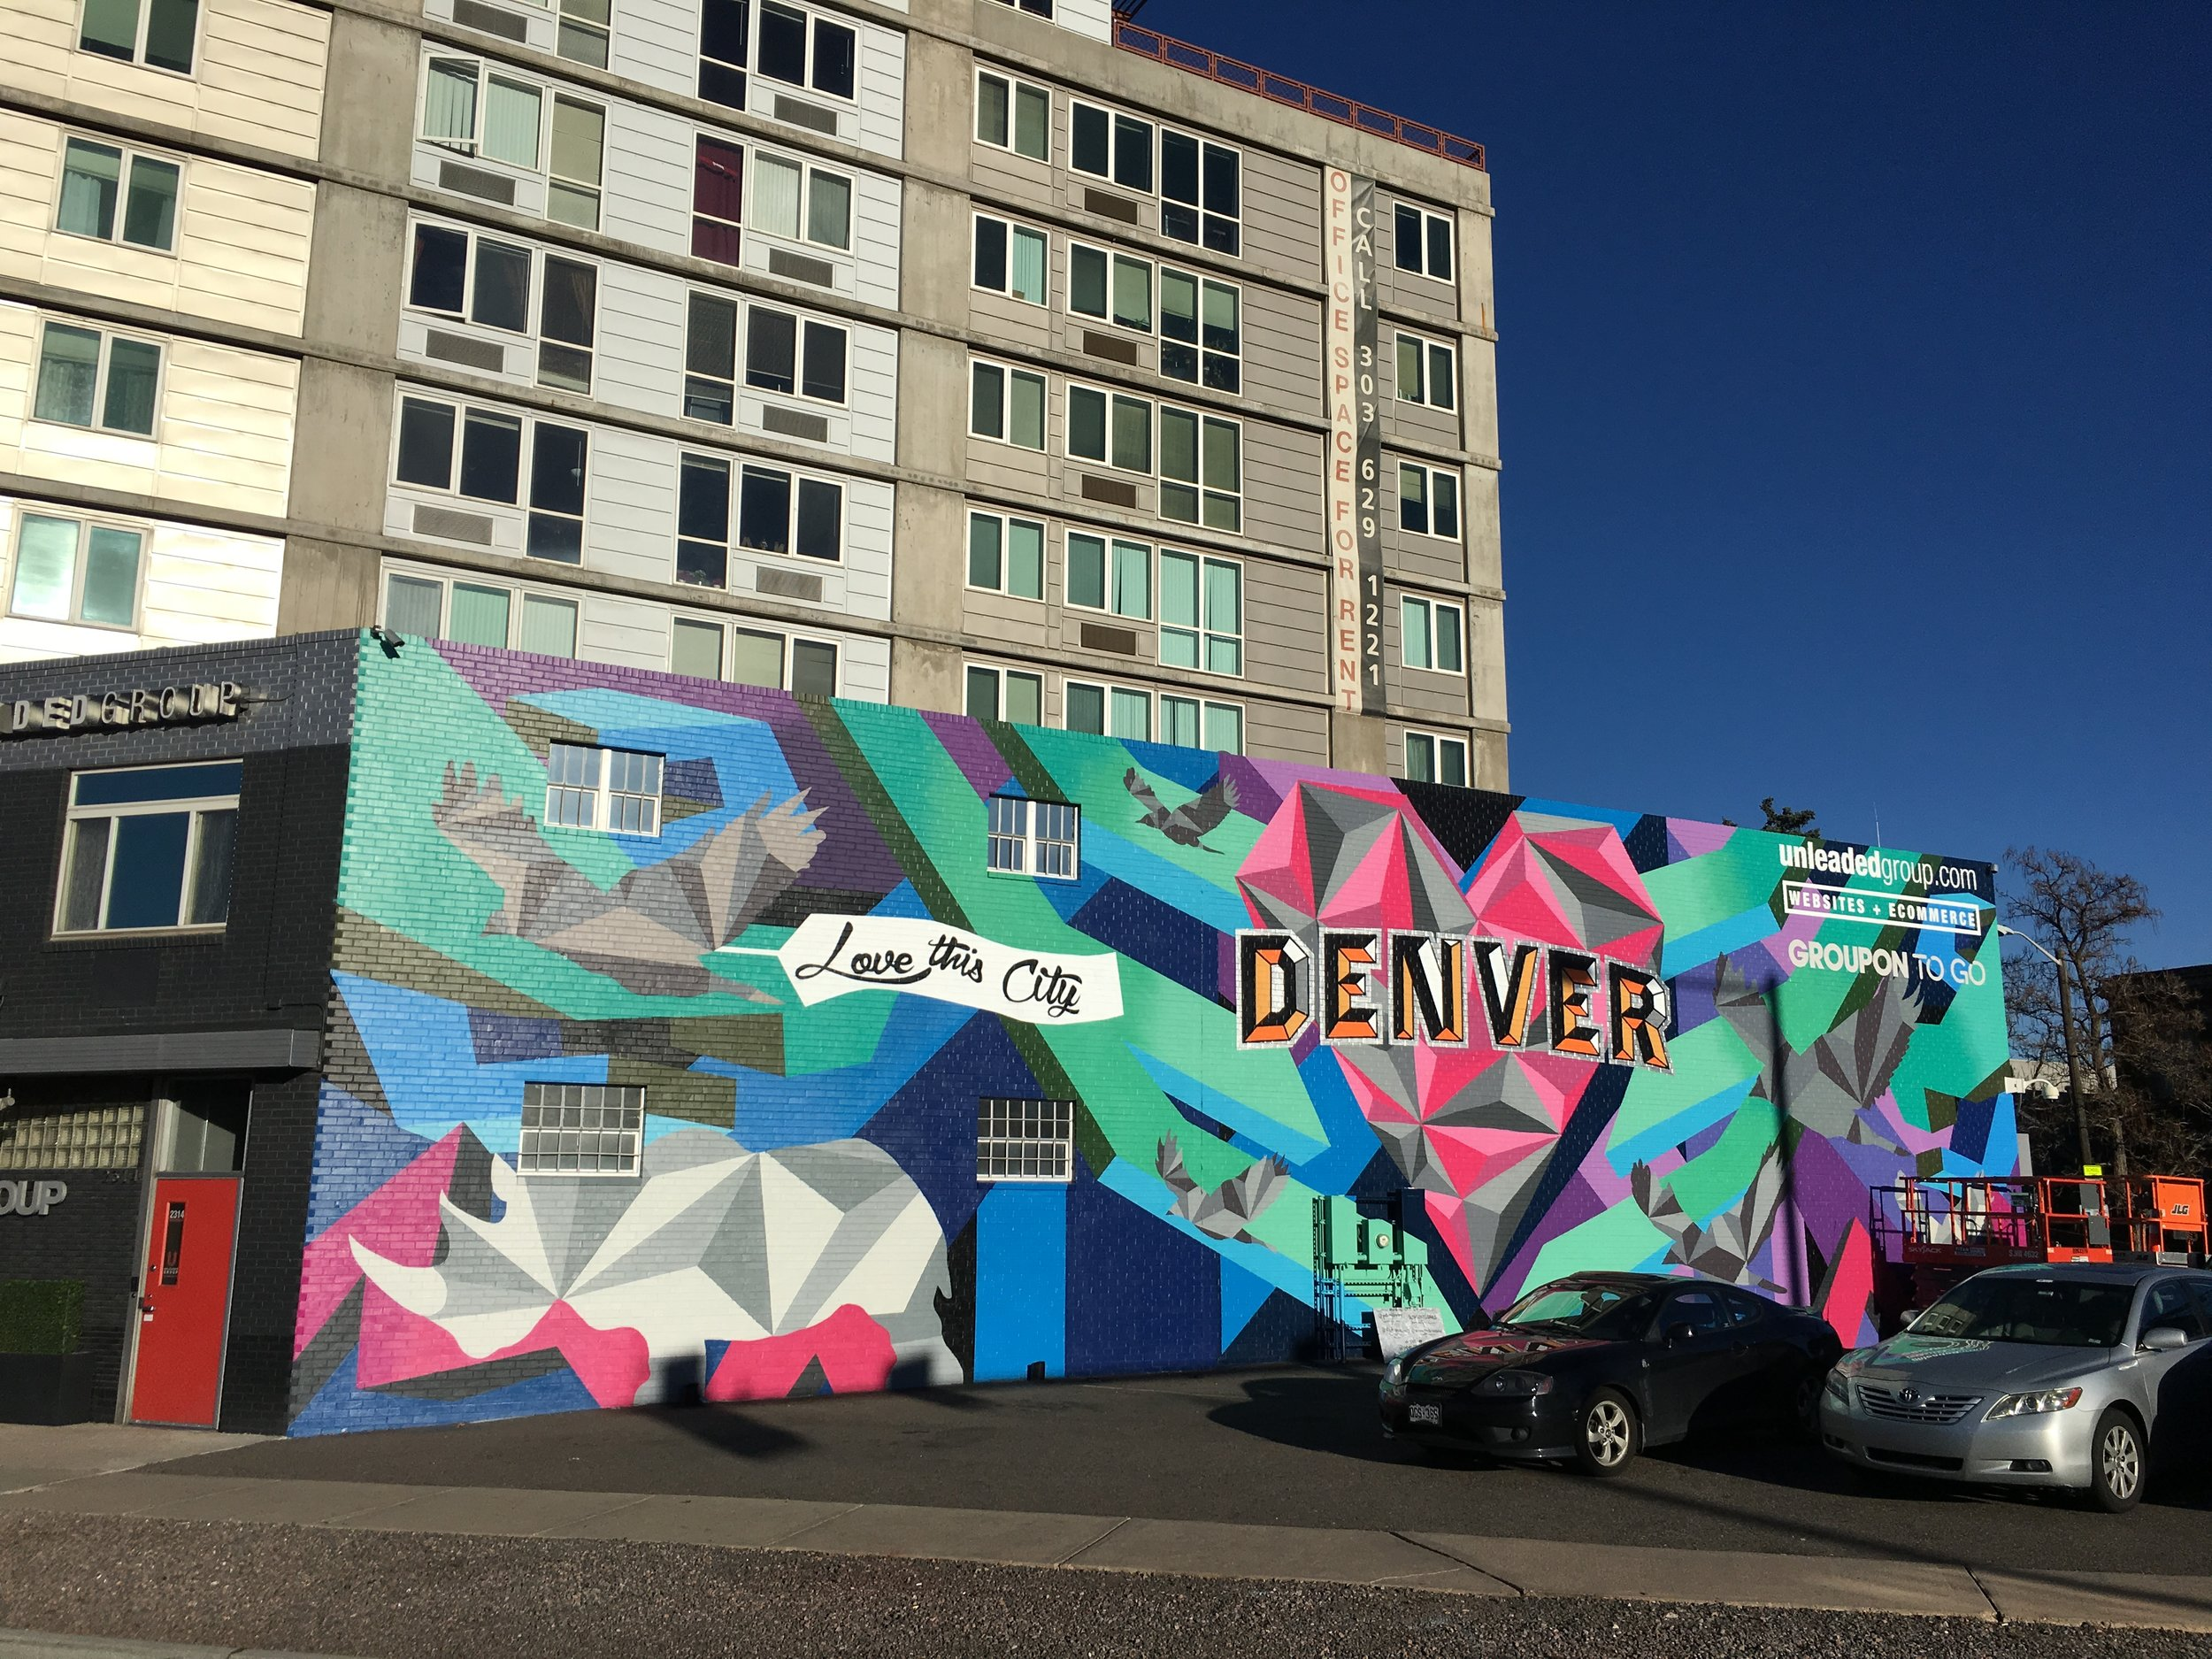 %22Love This City%22 Unleaded Group_Denver - 4x6.JPG